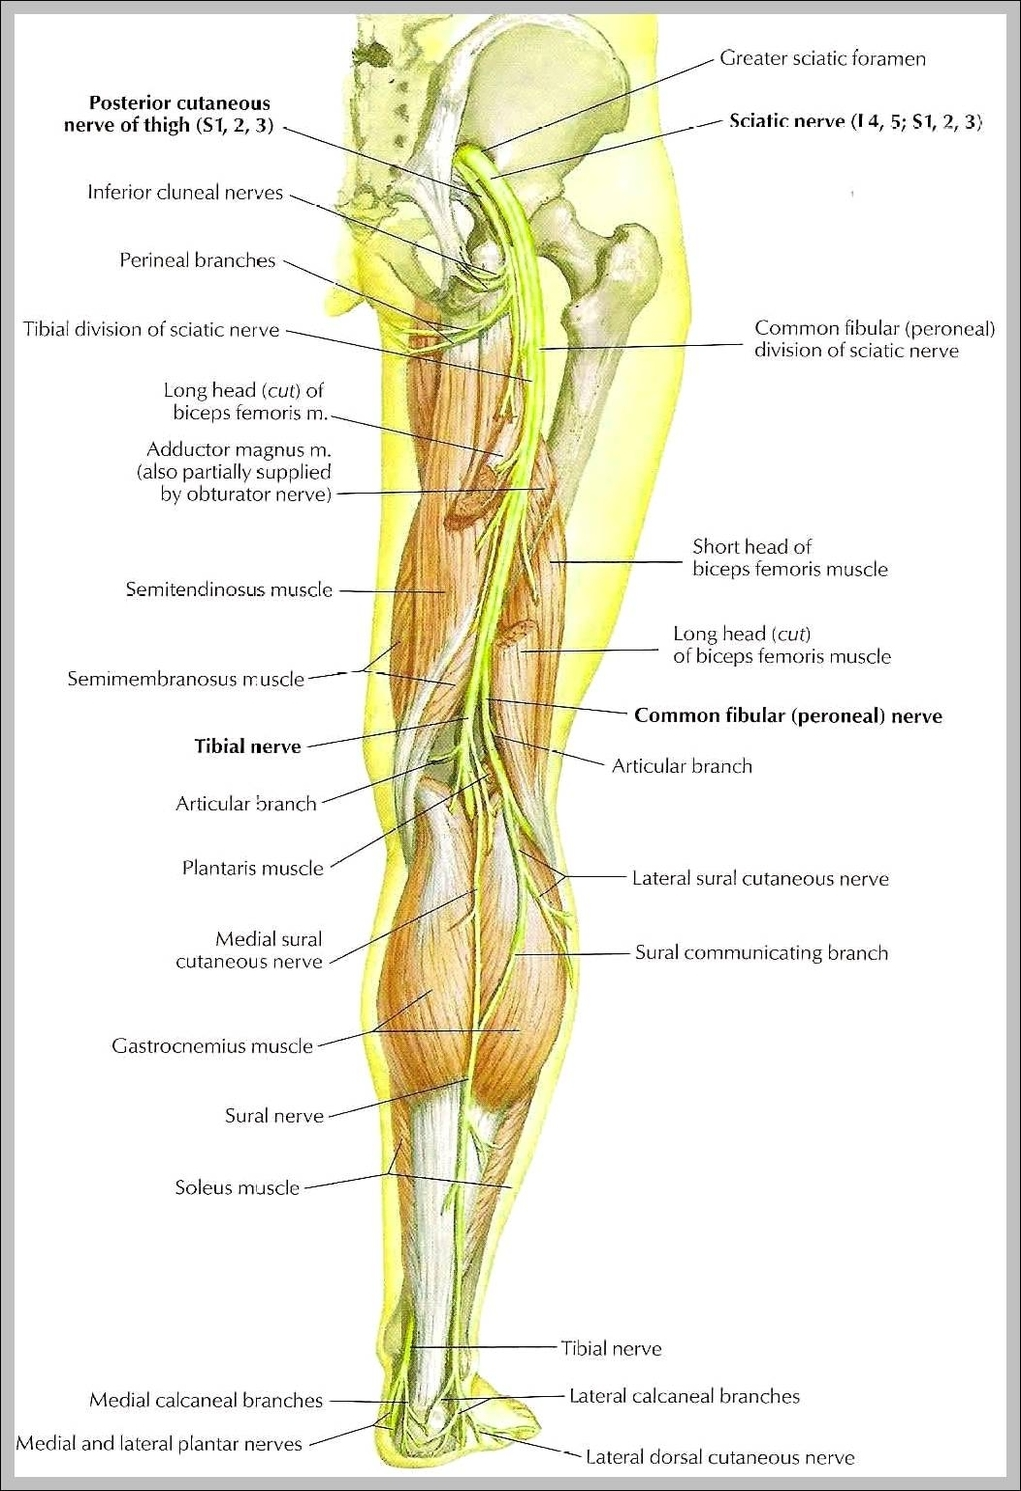 hight resolution of sciatic nerve picture diagram sciatic nerve picture chart human anatomy diagrams and charts explained this diagram depicts sciatic nerve picture with